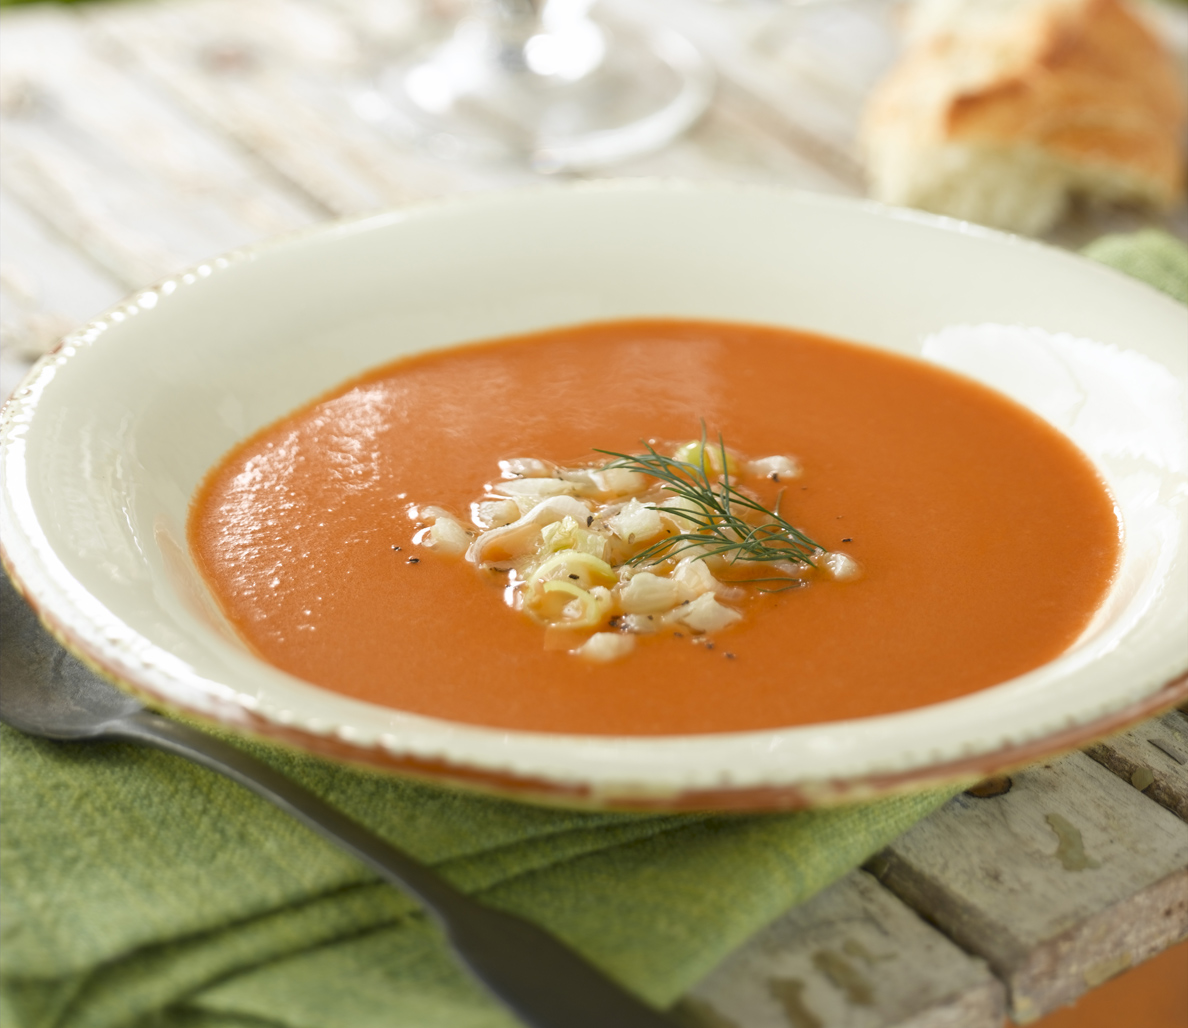 Healthy Meals 7 Best Canned Soups